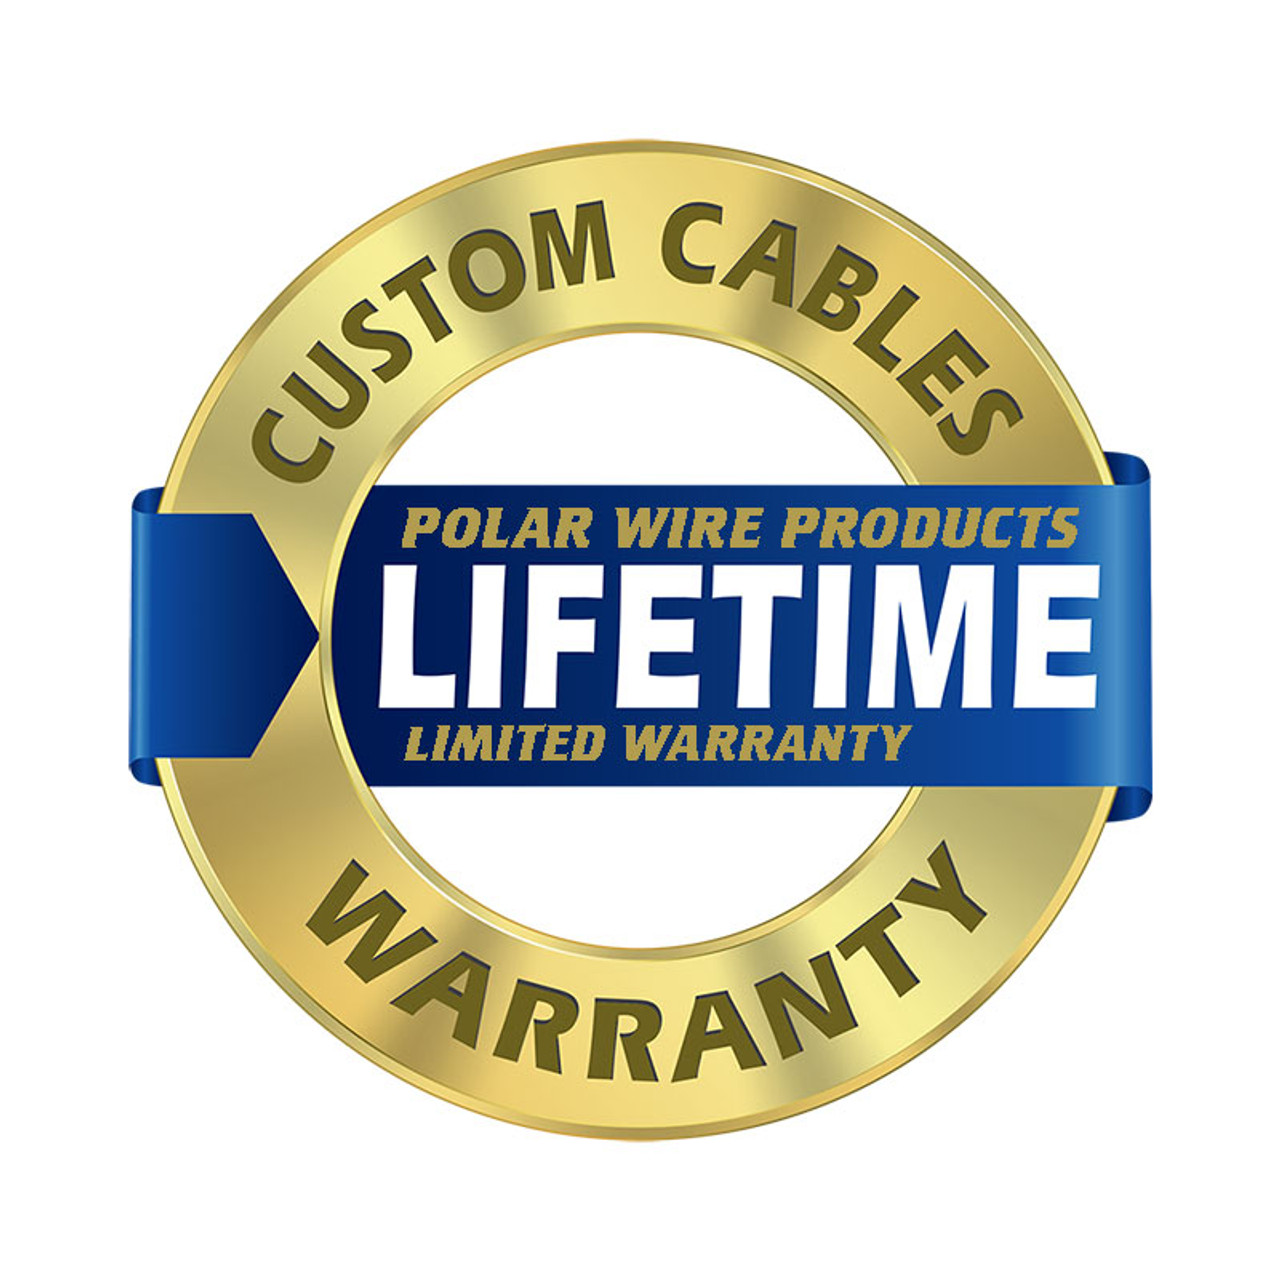 Polar Wire ATV UTV Jumper Cables are covered by our LIFETIME limited warranty!